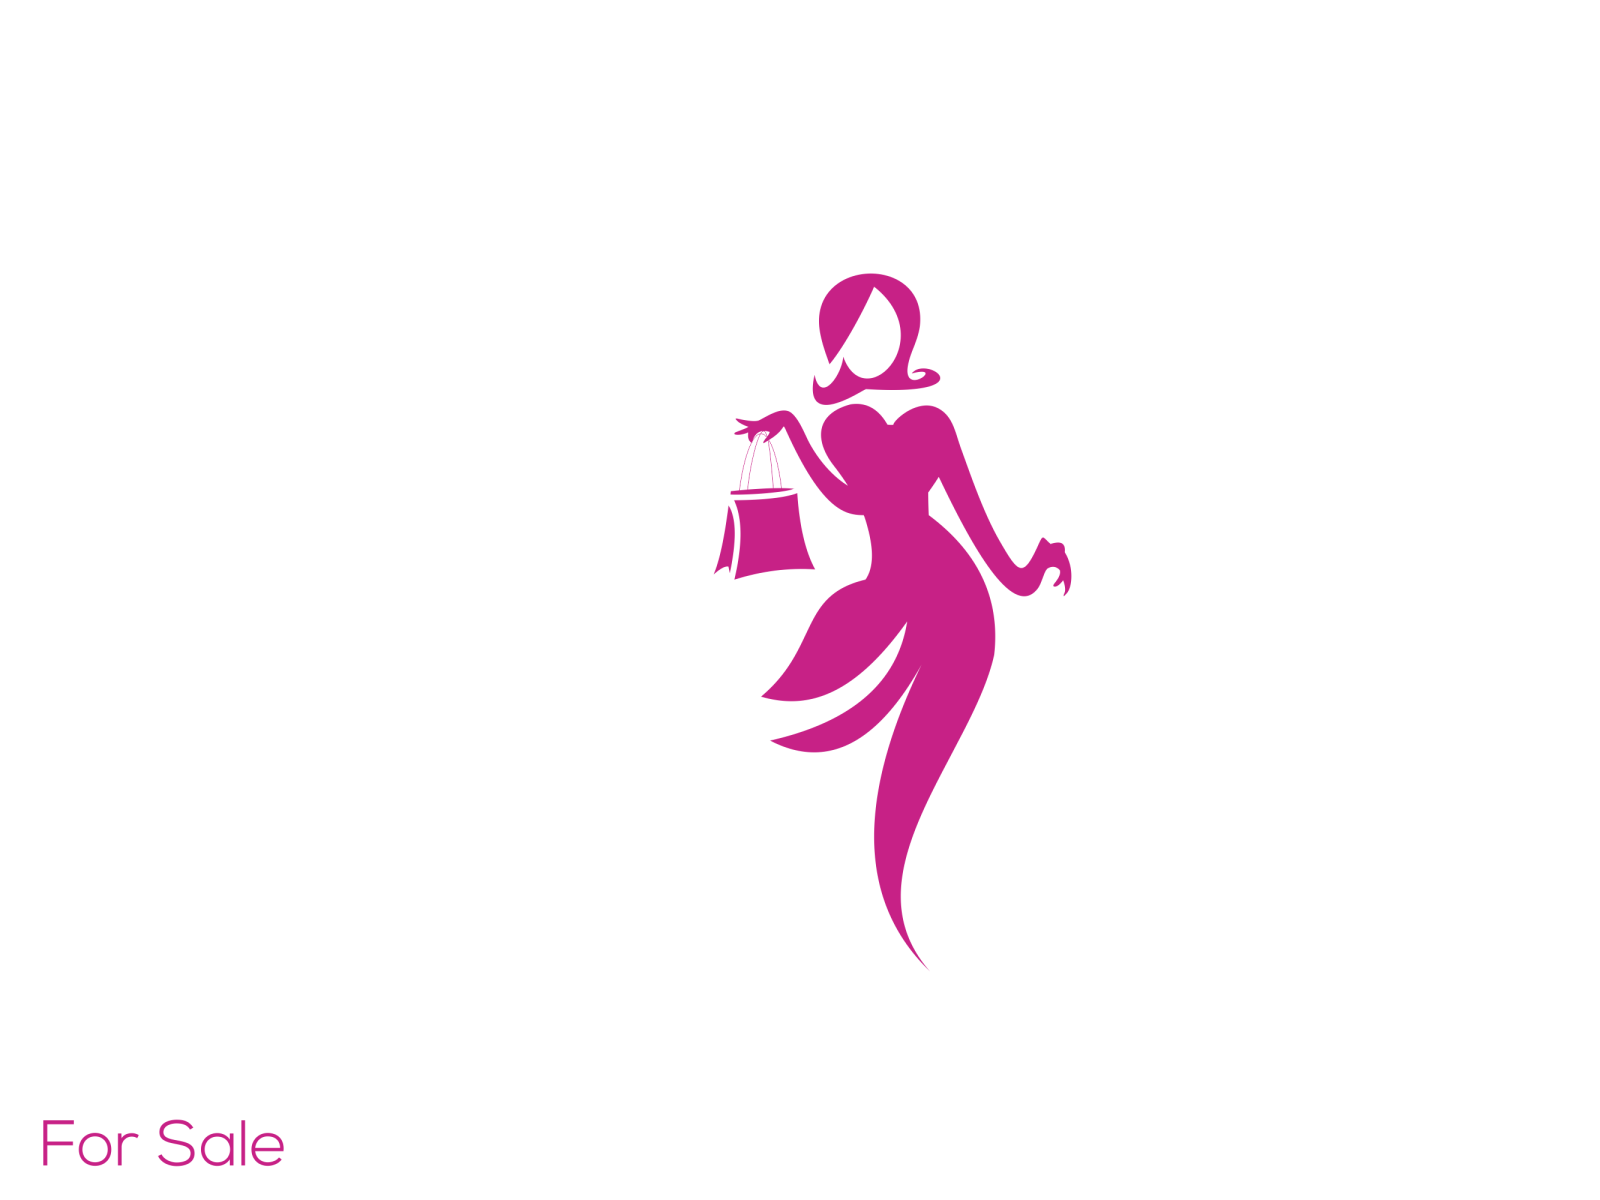 Logo Fashion By Minangartstudio On Dribbble